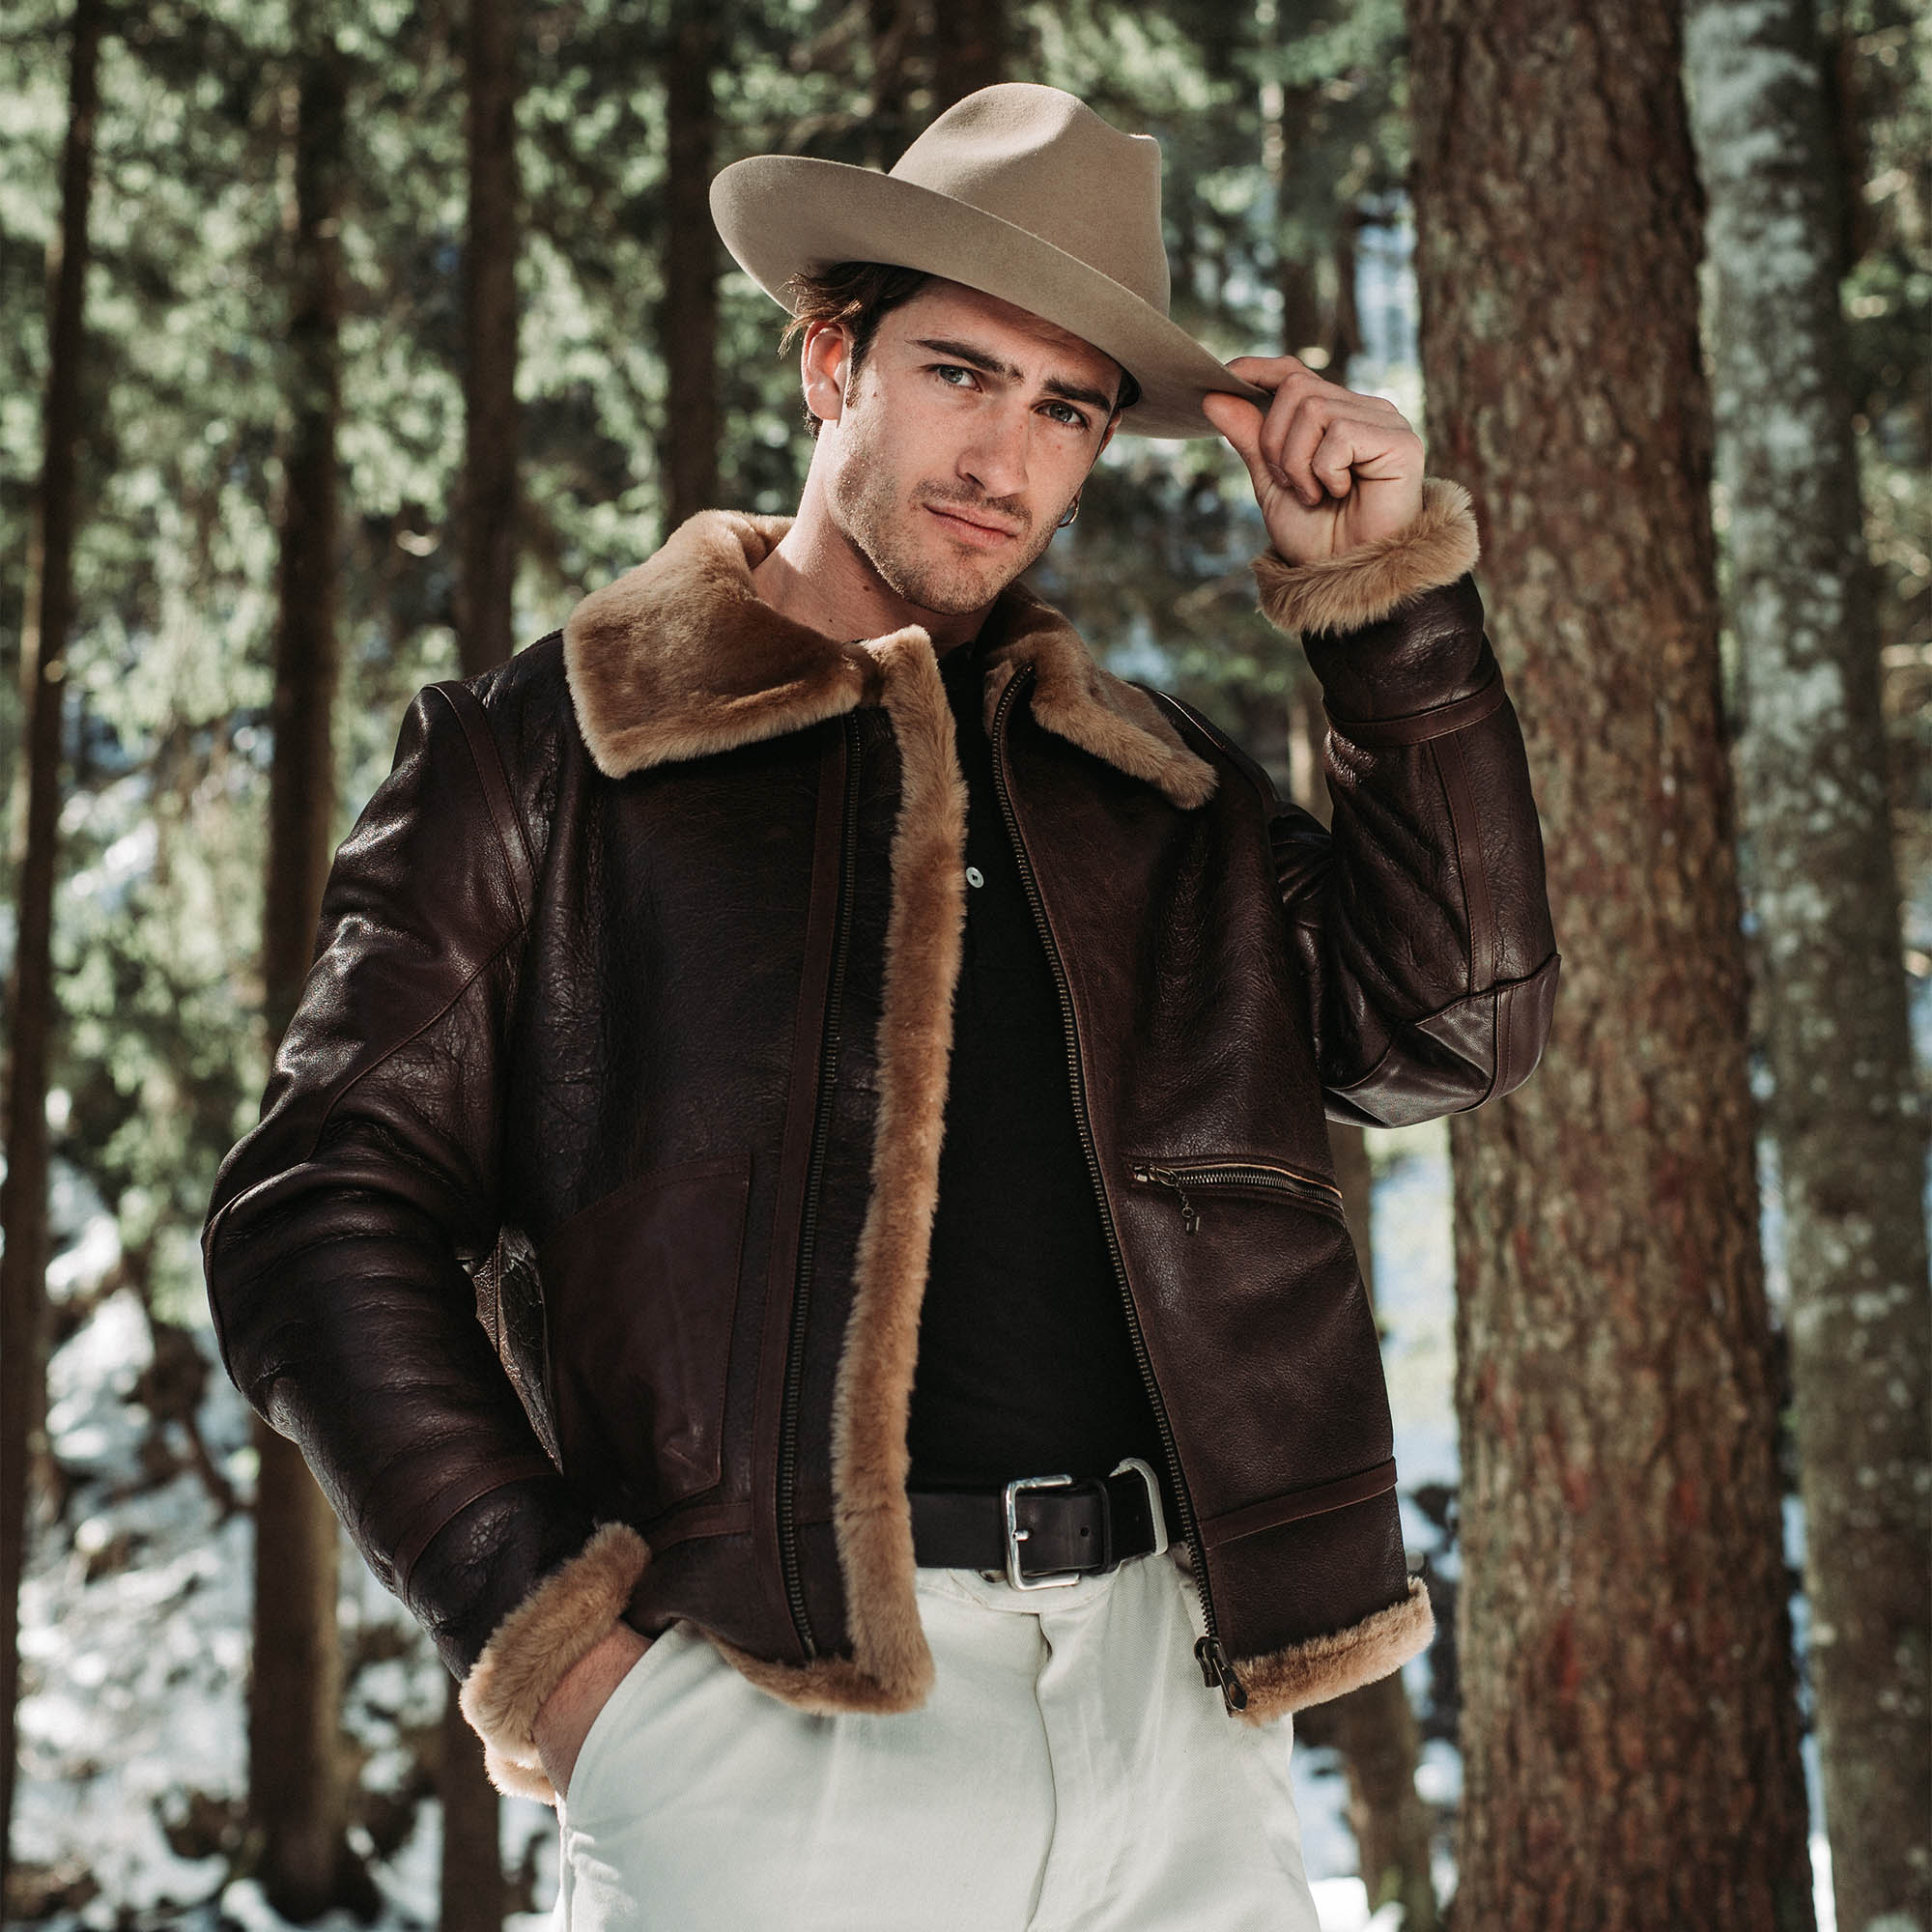 shangri-la-heritage-aviatore-b-3-seal-brown-shearling-sheepskin-jacket-furia-western-hat-explorator-pant-lifestyle-3